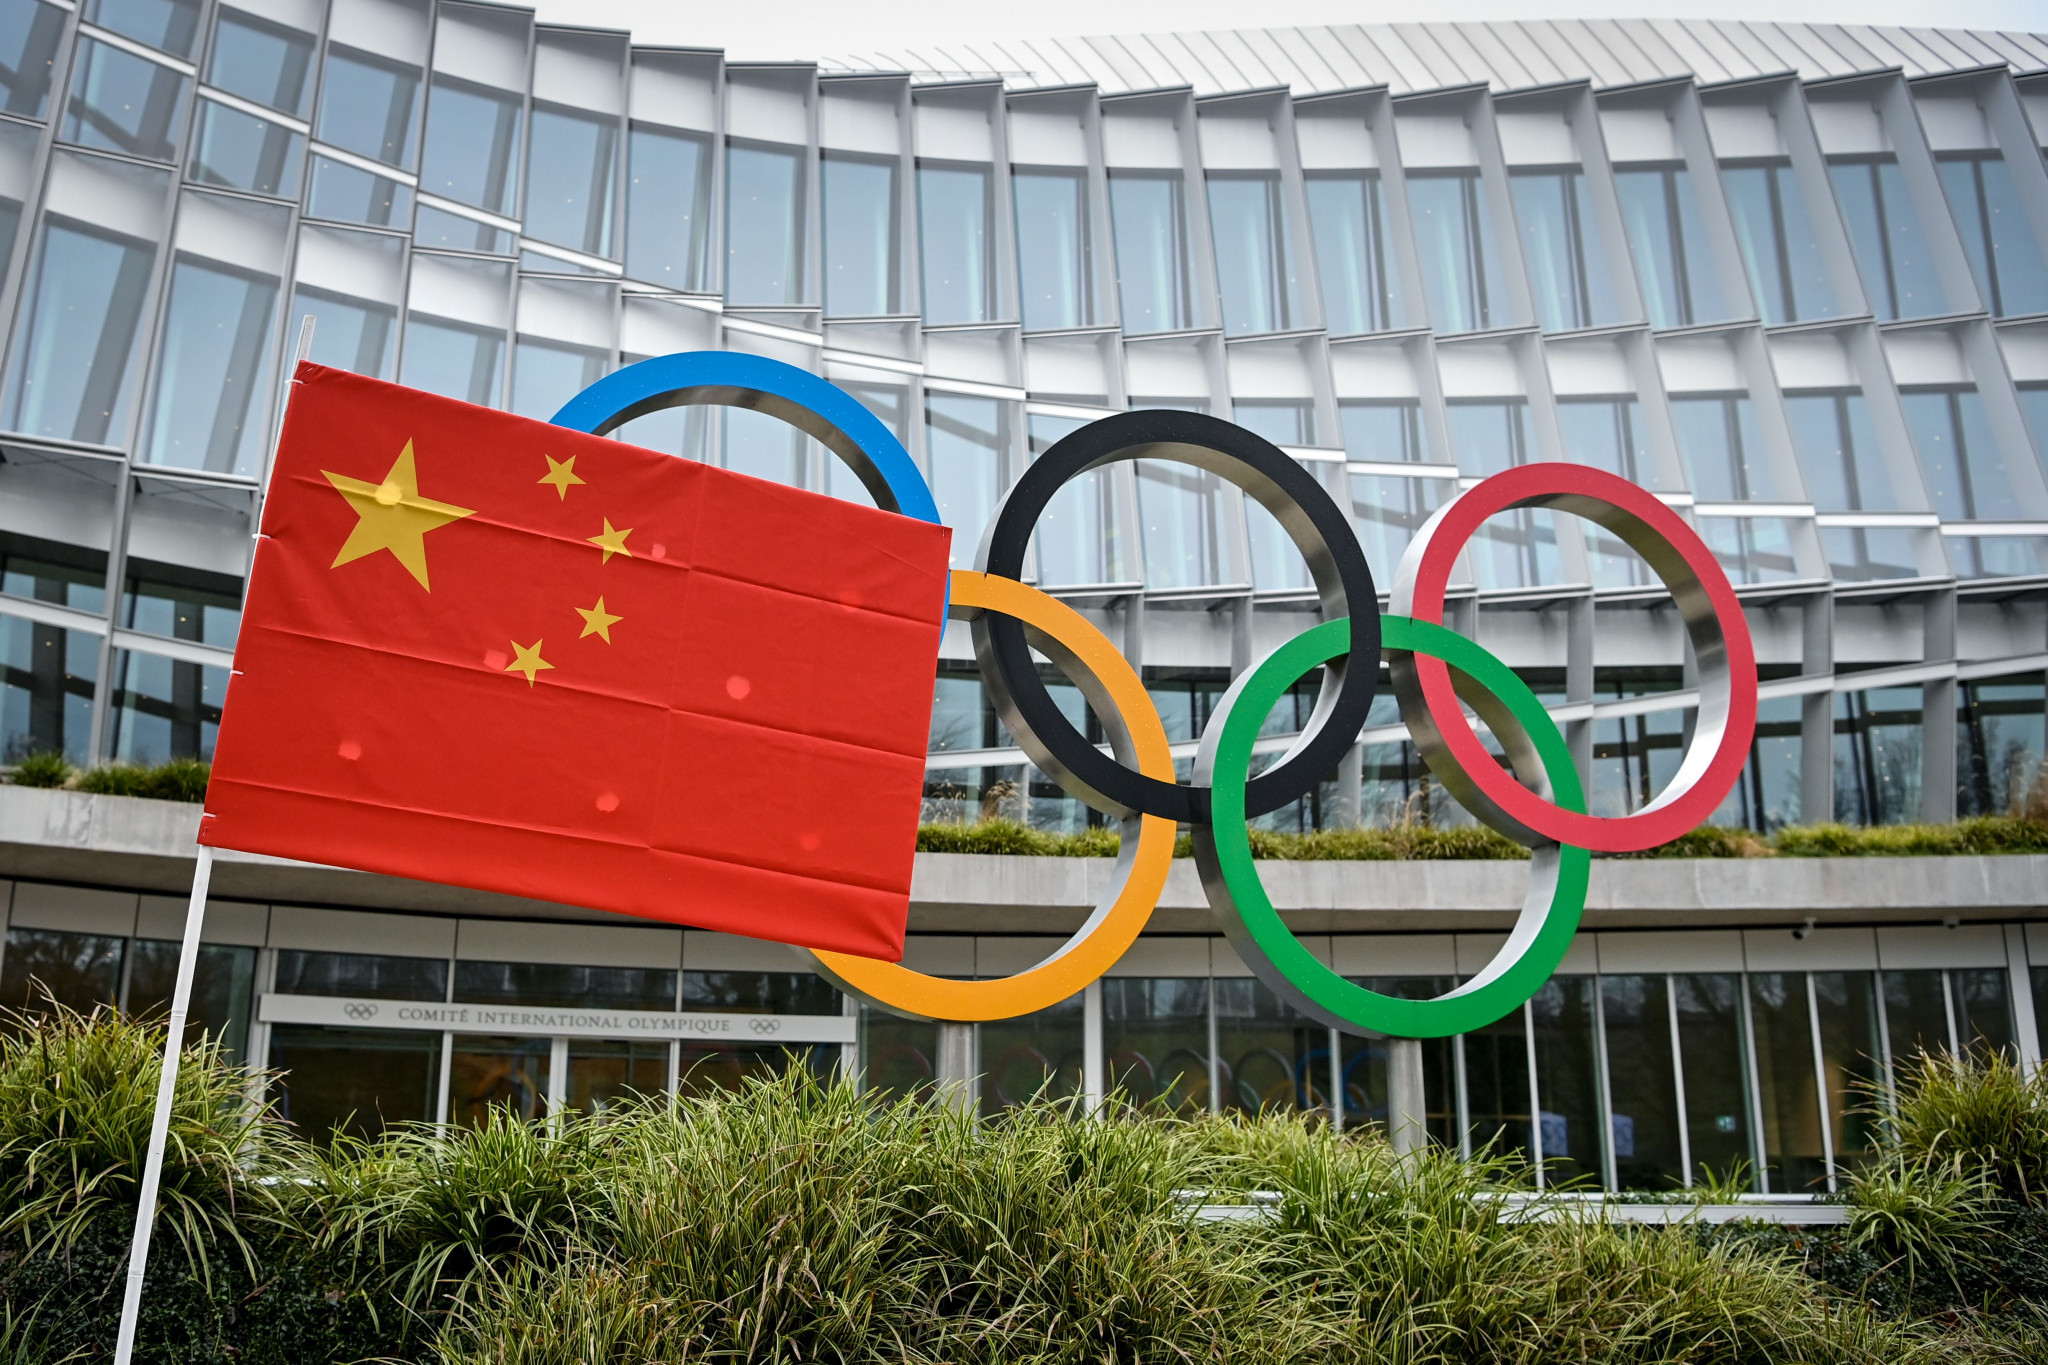 World Uyghur Congress asks IOC Ethics Commission chair Ban to respond to Beijing 2022 complaint